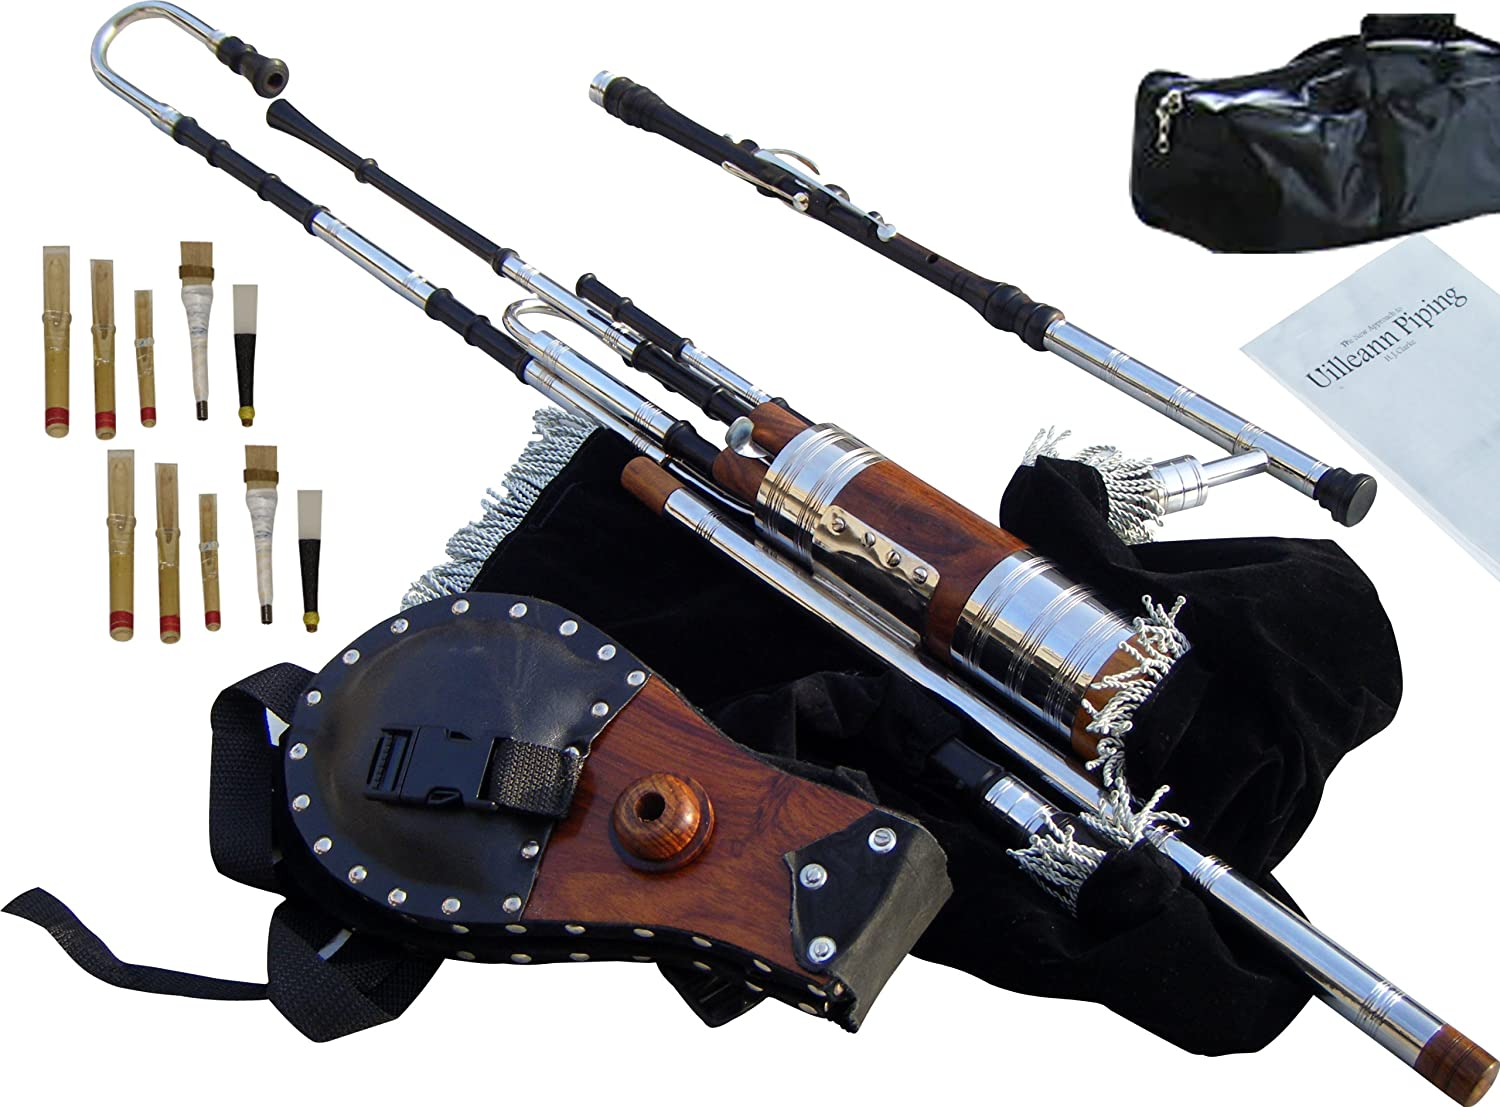 Learn To Play With Tutor Book /& Box New Irish Uilleann Pipes Half Set